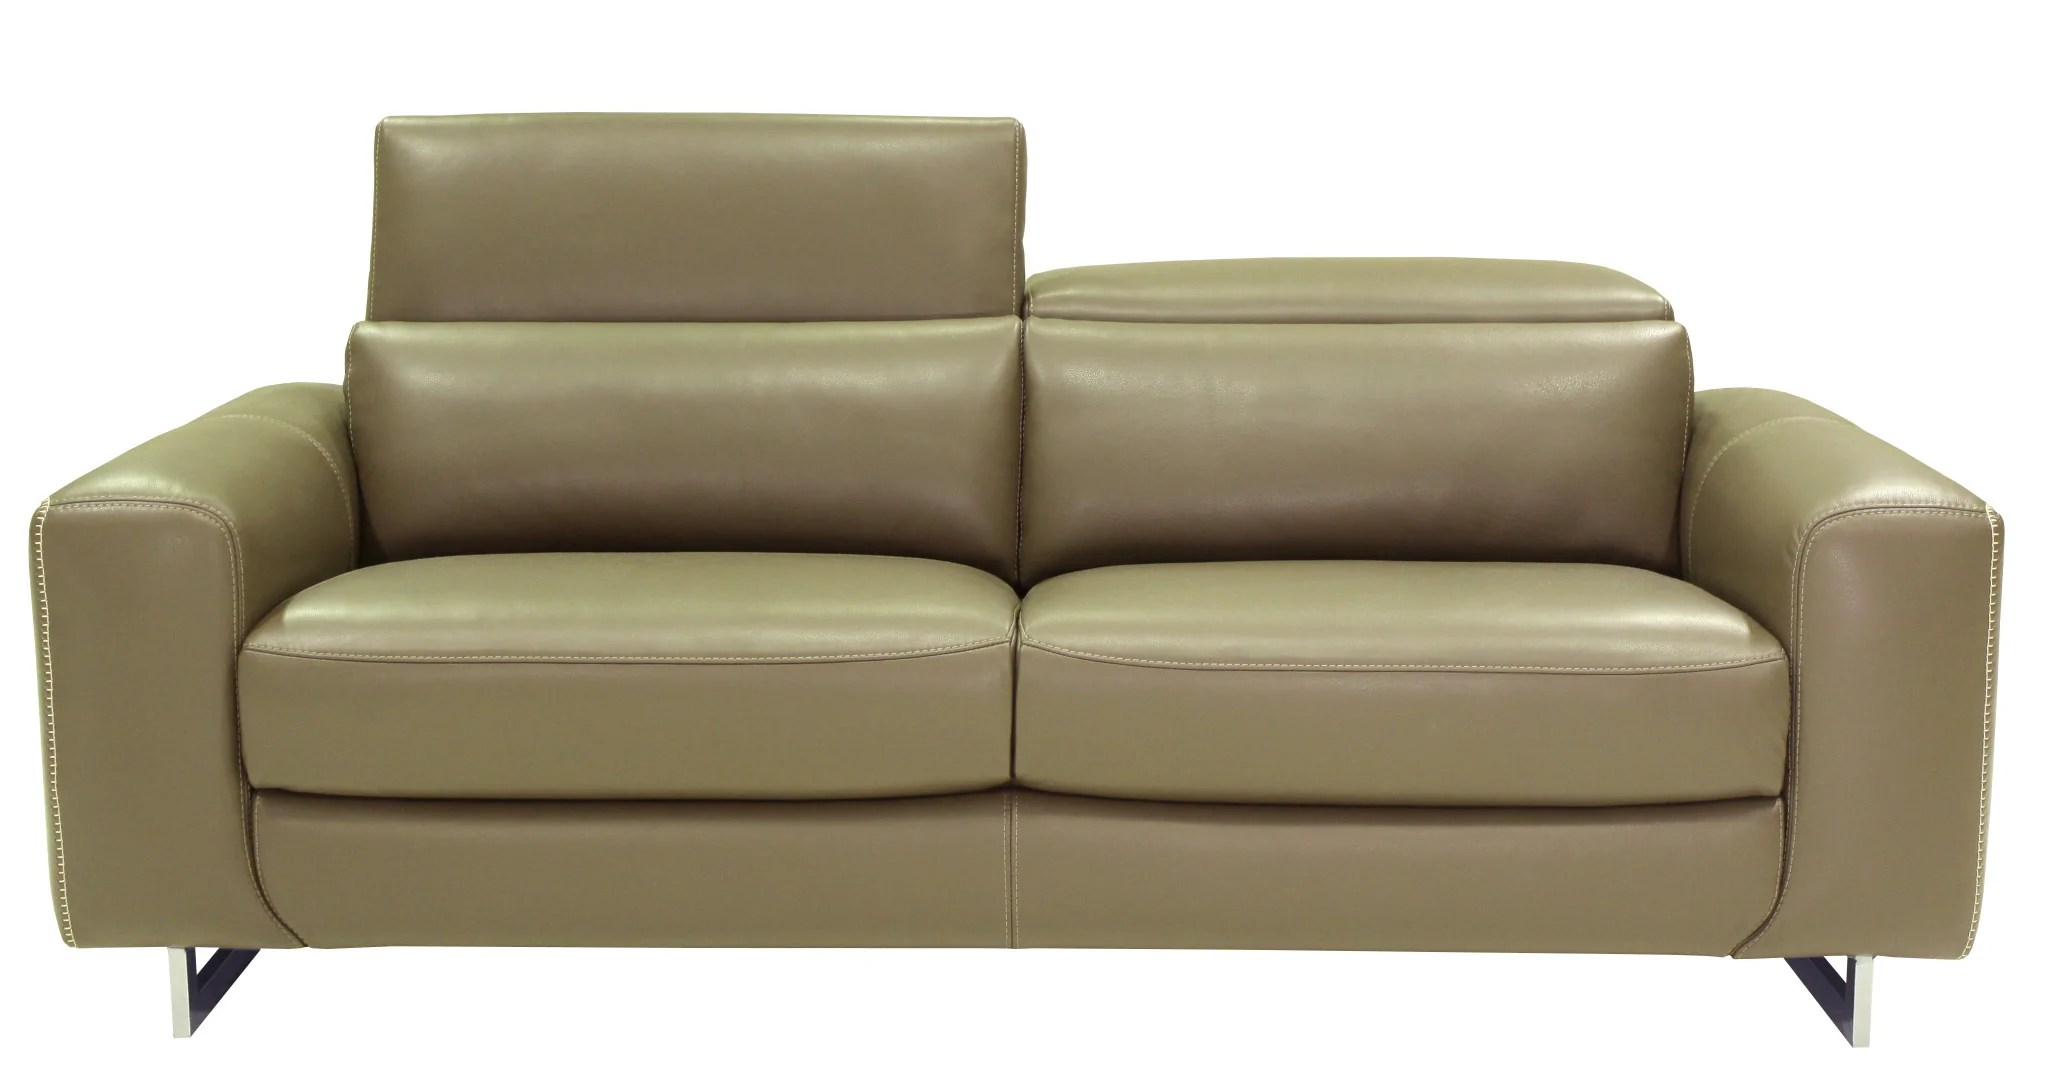 Ikea Köln Sofa Muse A6168 Sofa With Power Recliners Eurohaus Modern Furniture